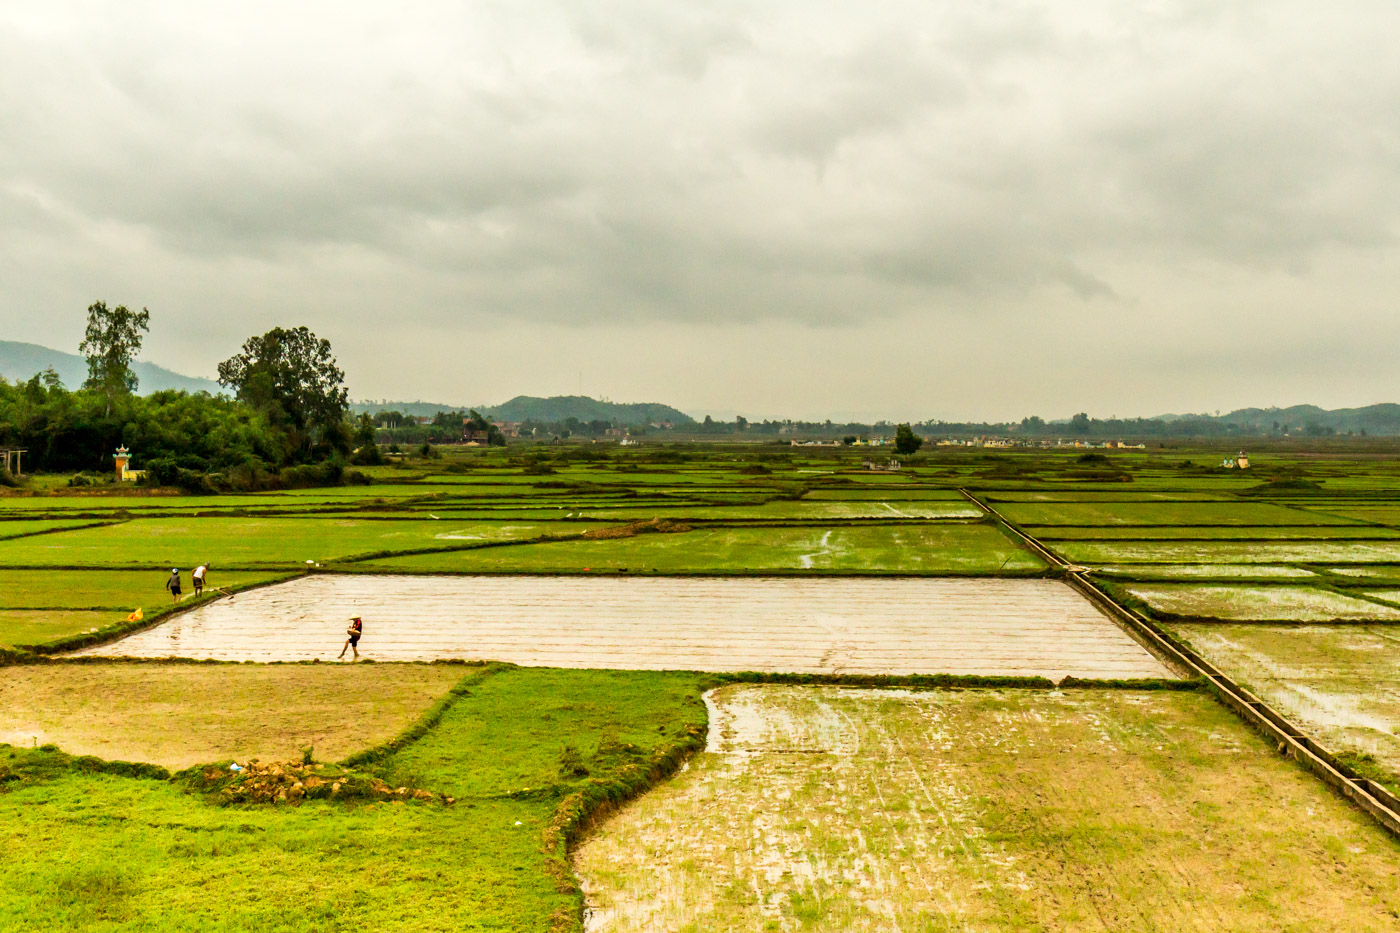 The rice fields of Phong Nha.